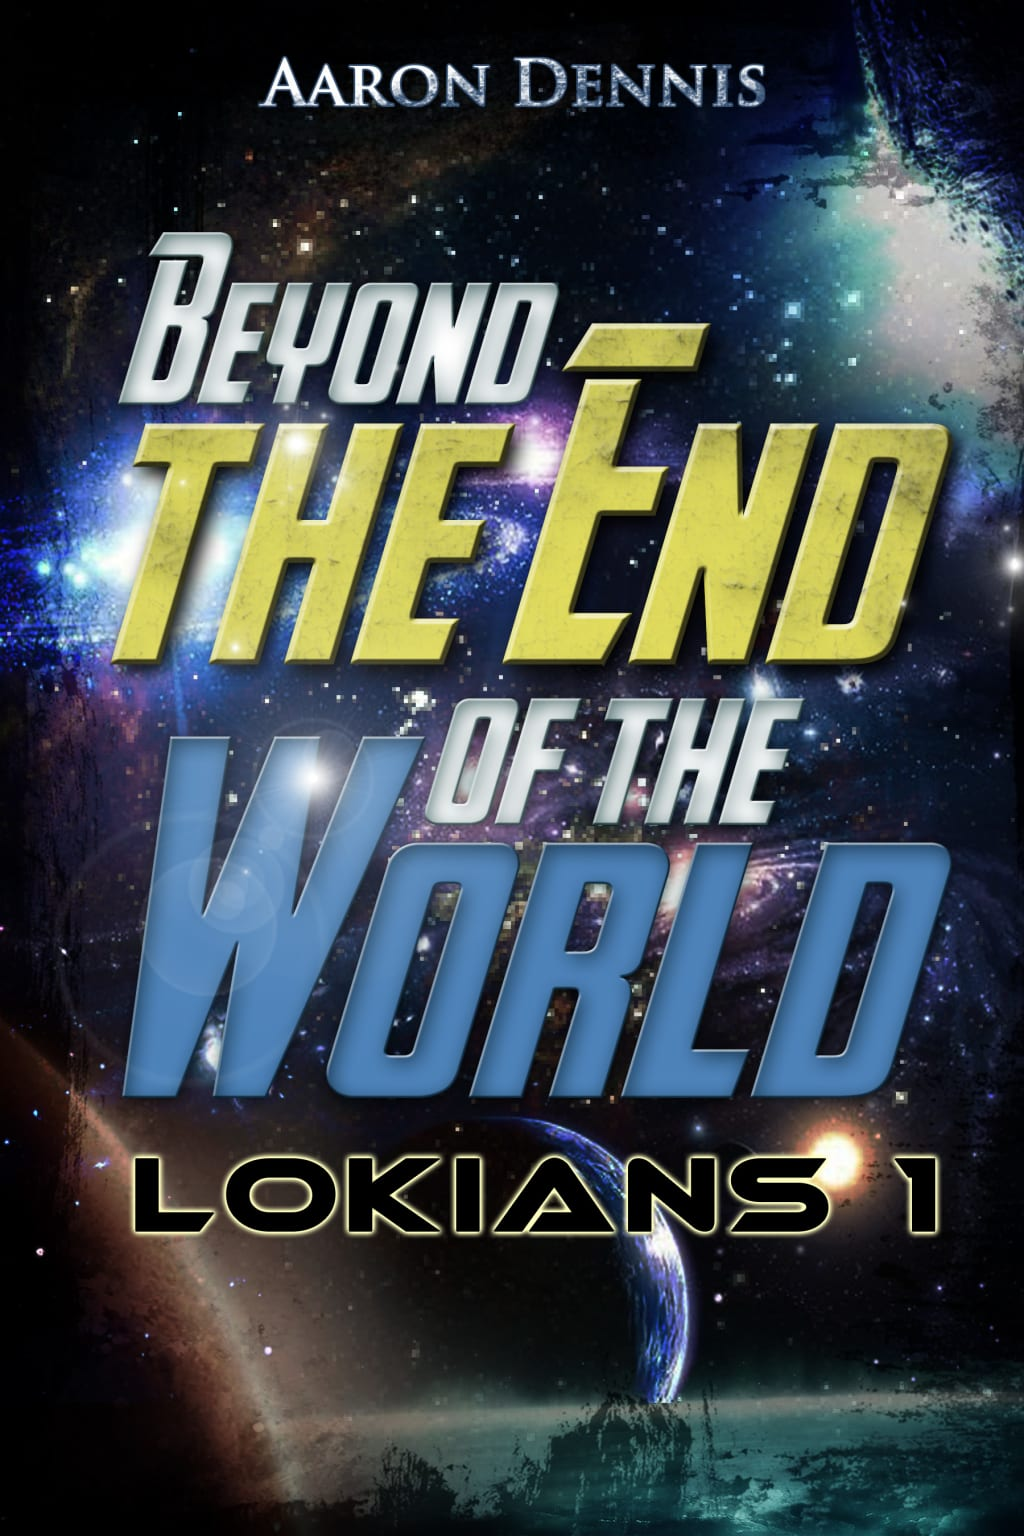 Part 27 of Beyond the End of the World, Lokians 1